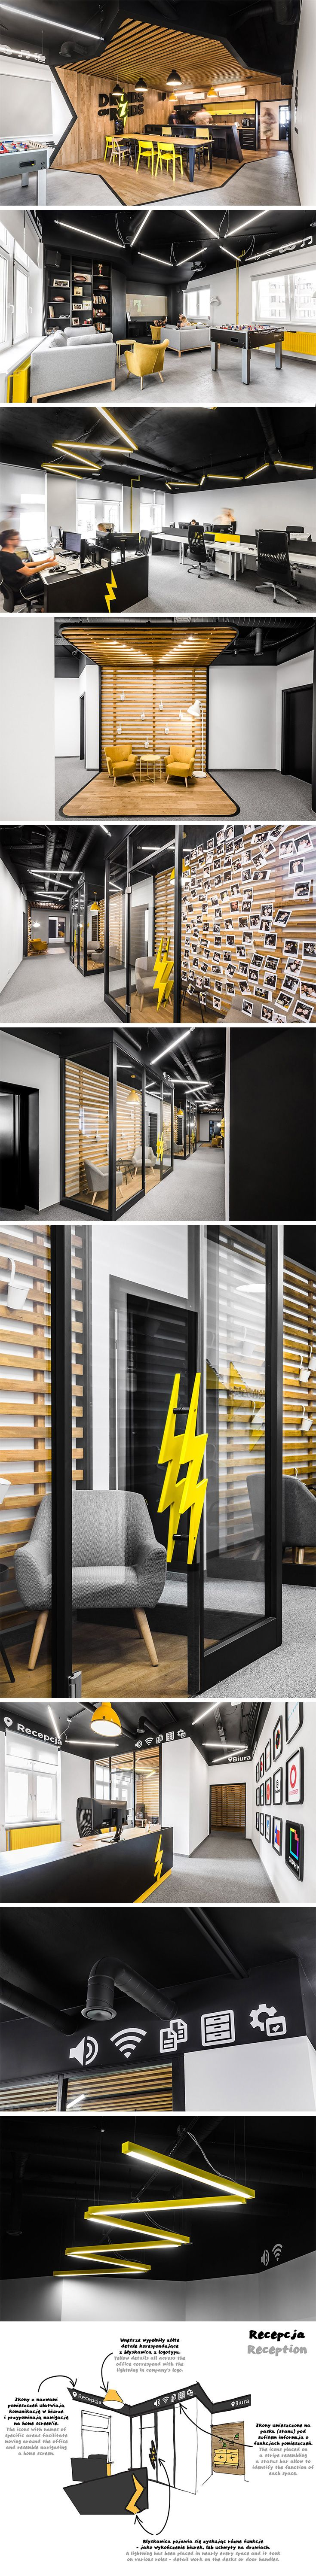 Droids on Roids is a team of programmers, so making their new office seem familiar made perfect sense to the designers at Mode:lina. Navigating the space is a lot like navigating the home screen on your phone! Icons placed on the black stripe that runs along the walls (that serves as a sort of status bar) as well as the doors serve as a visual code which allows employees and guests to identify the function of each space.